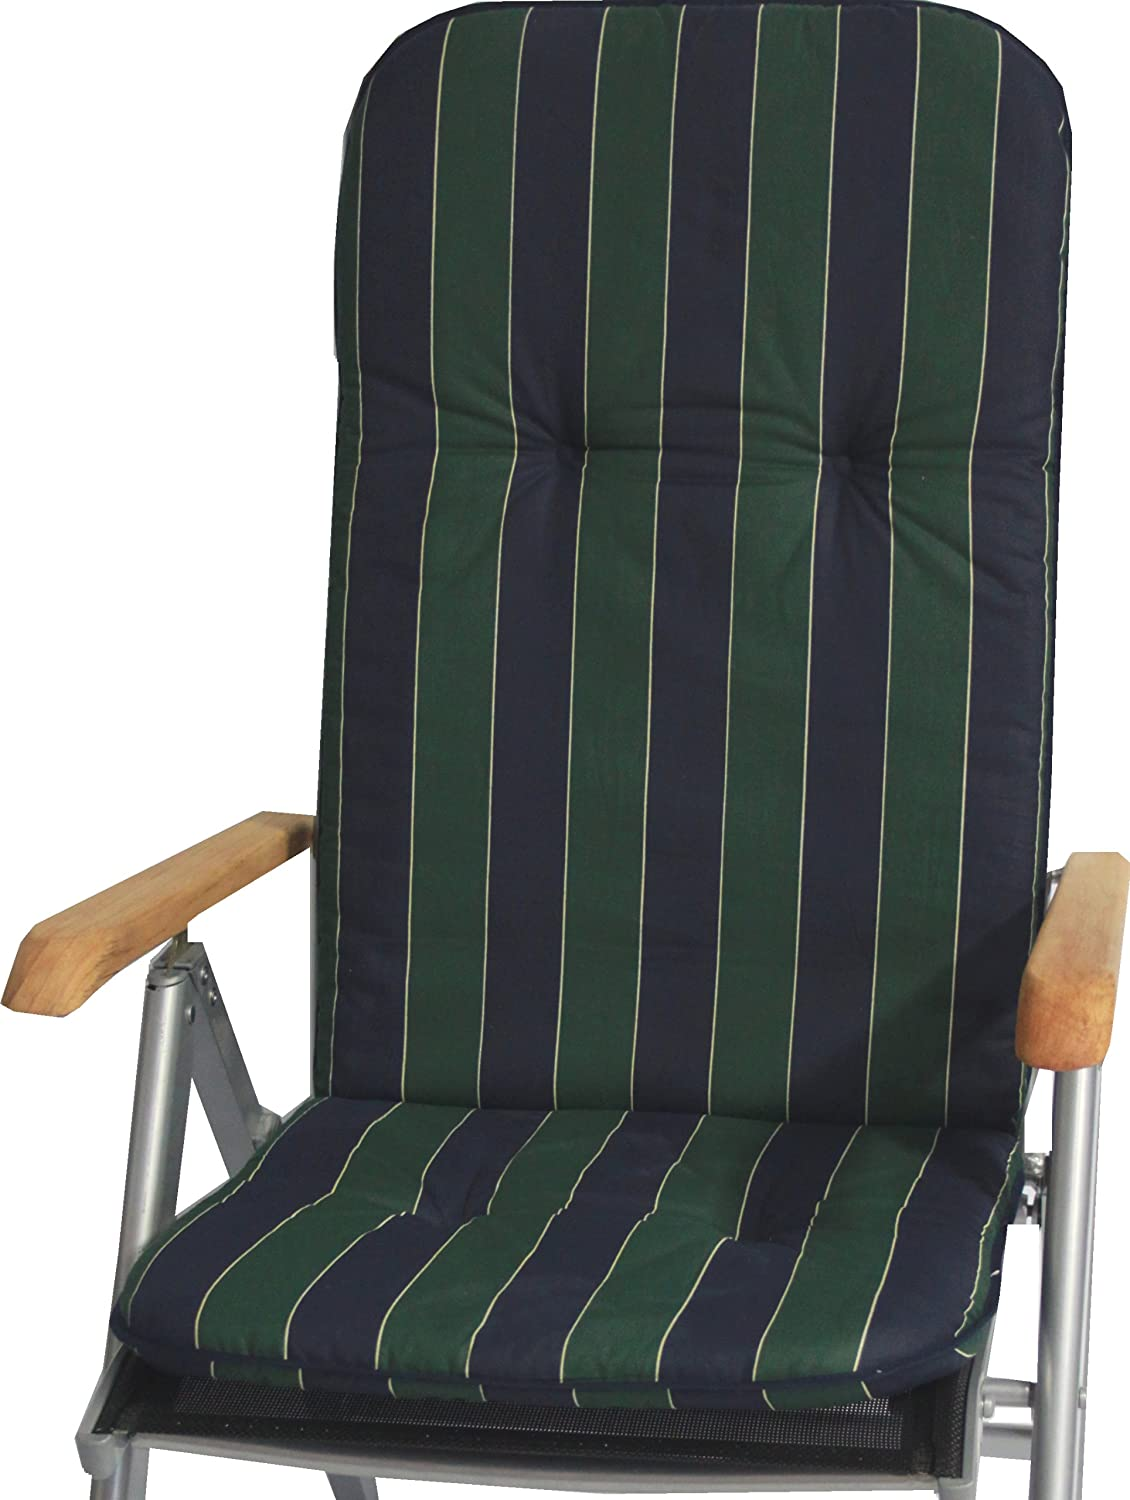 beo MS06 Catania HL piping pad for chair, circa 47 x 116 cm, approximately 5 cm thick Gartenstuhl-Kissen